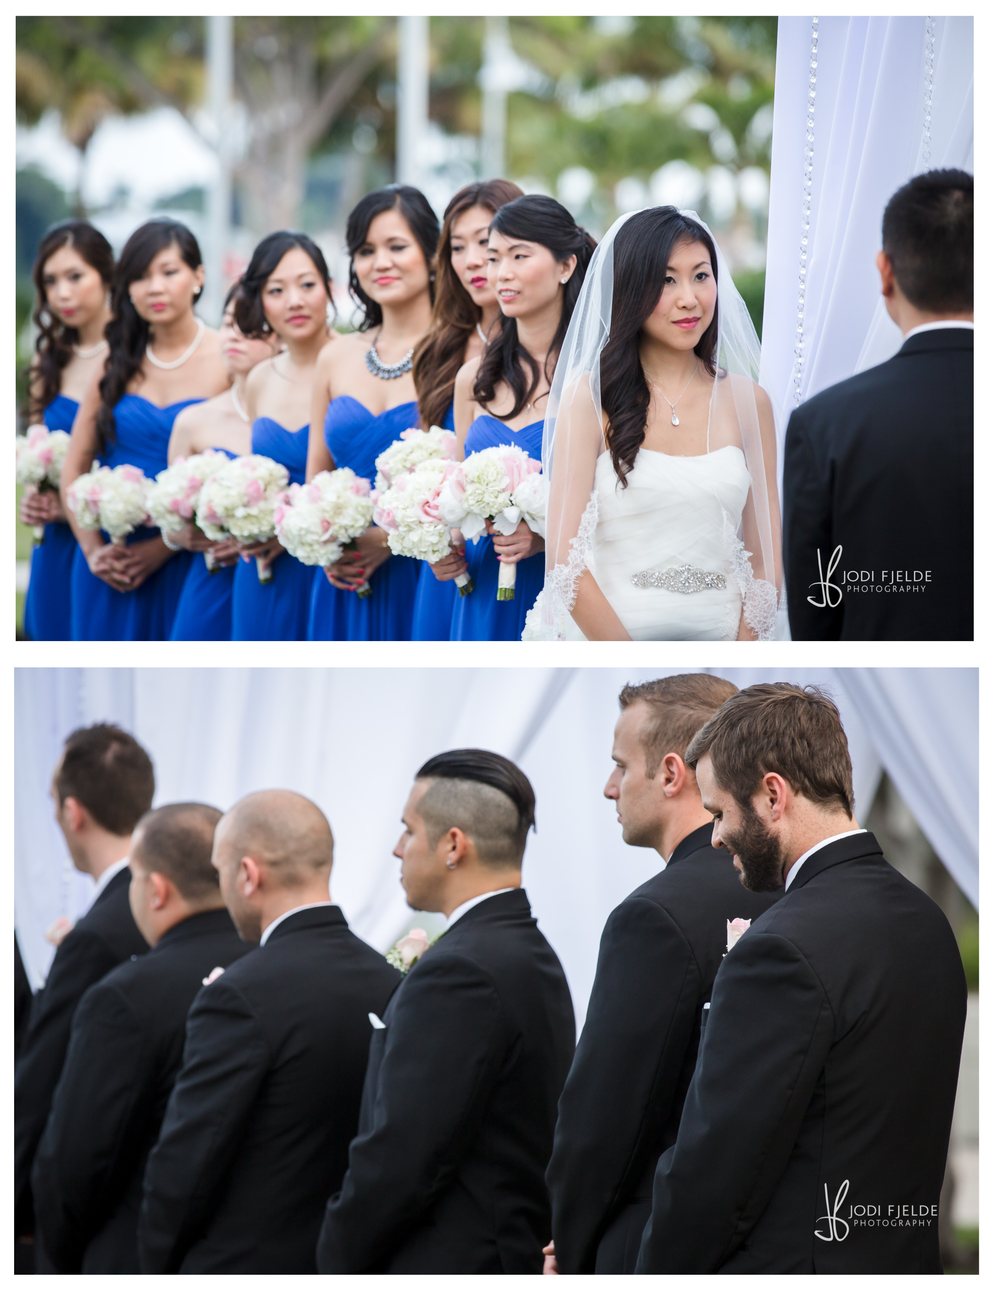 Lake_Pavilion_Wedding_West_Palm_Beach_Jodi_Fjelde_Photography_Betty_Alex_Sociaety_Of_Four _Arts_15.jpg